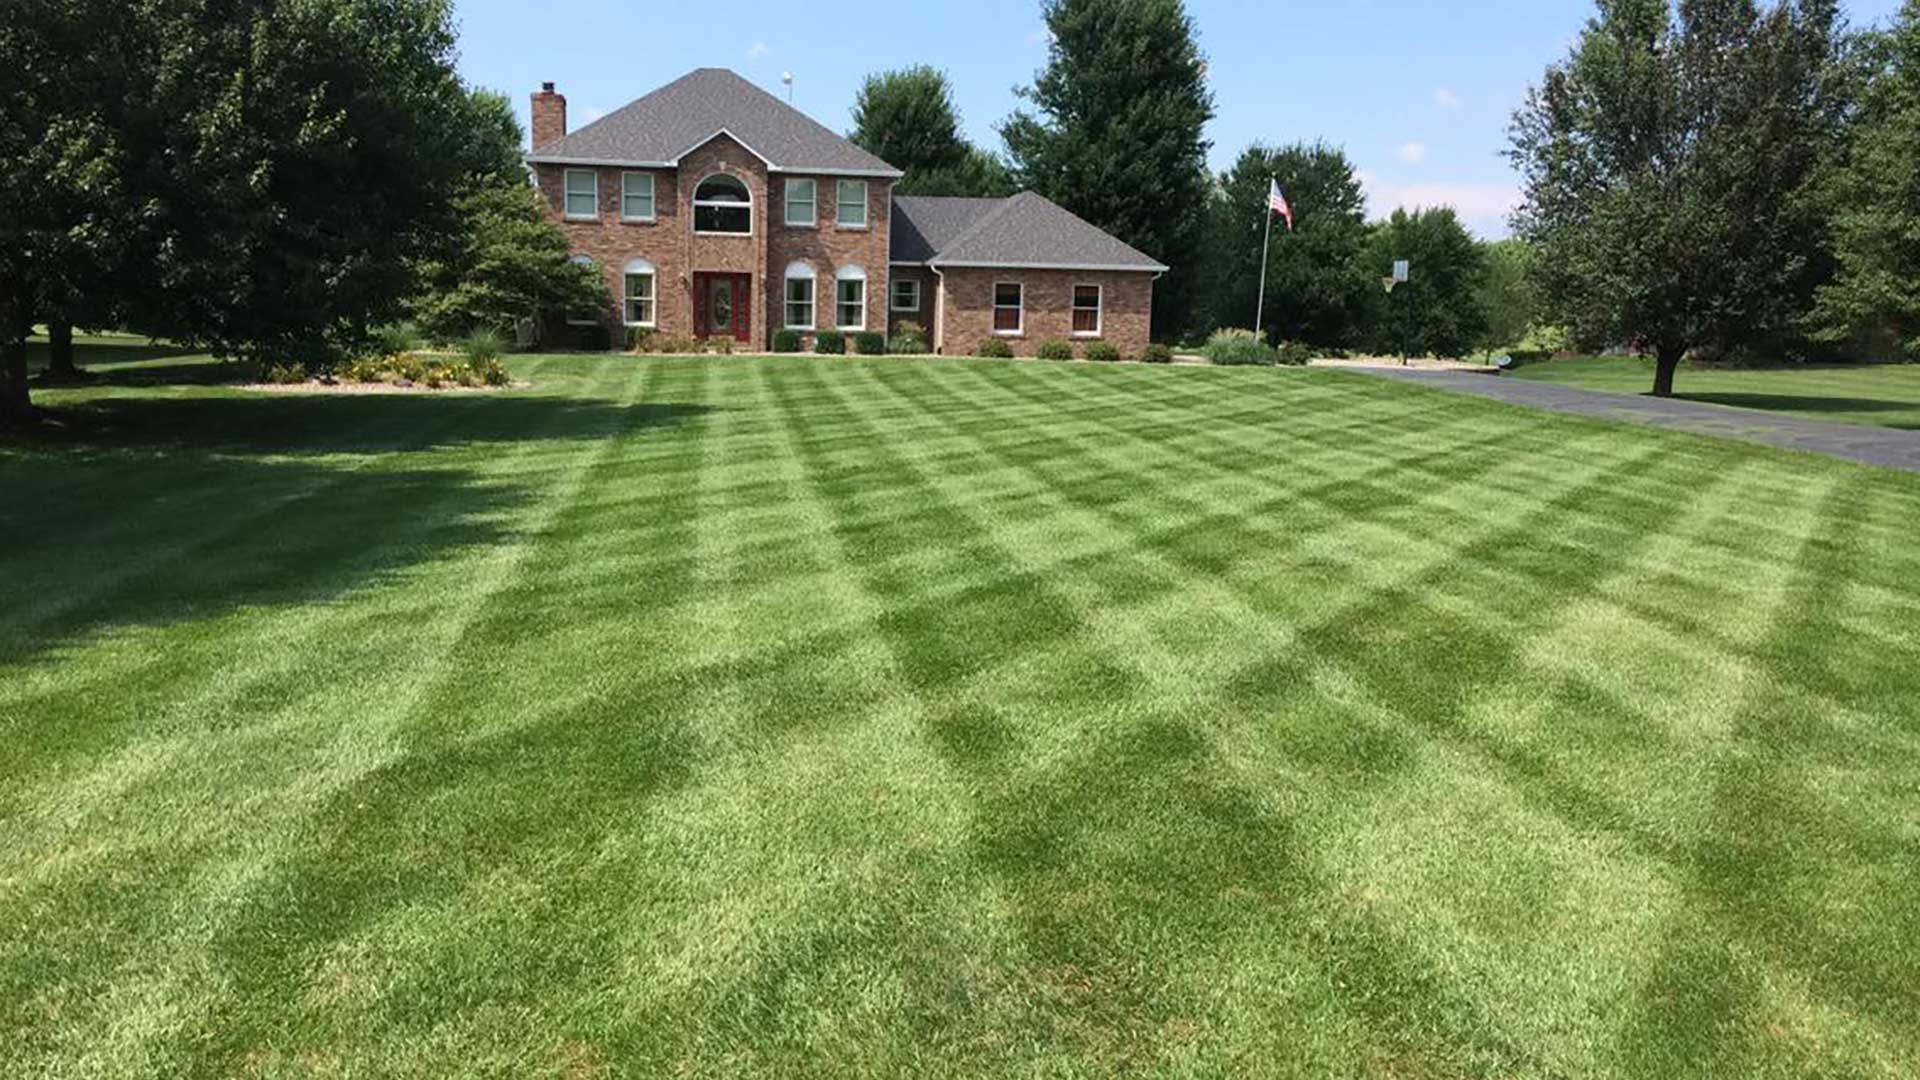 This lawn in Columbia, IL gets properly mowed each week by our staff.